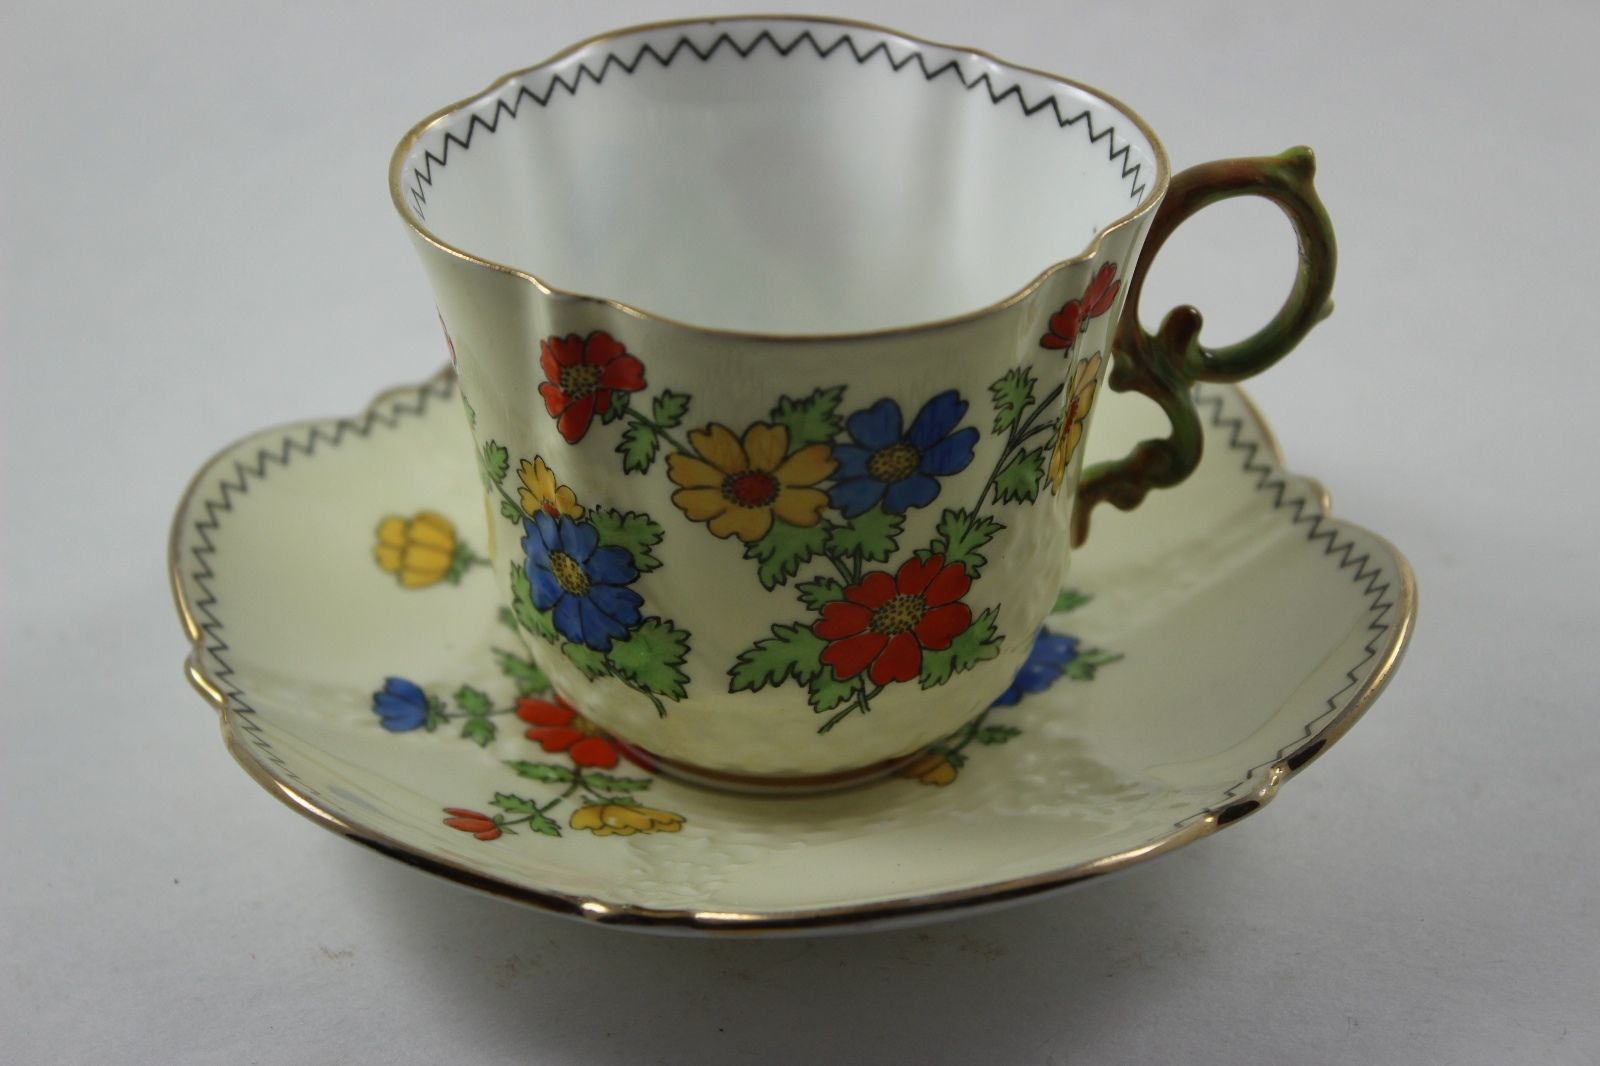 Vintage Aynsley England Tea Cup and Saucer Floral Design China